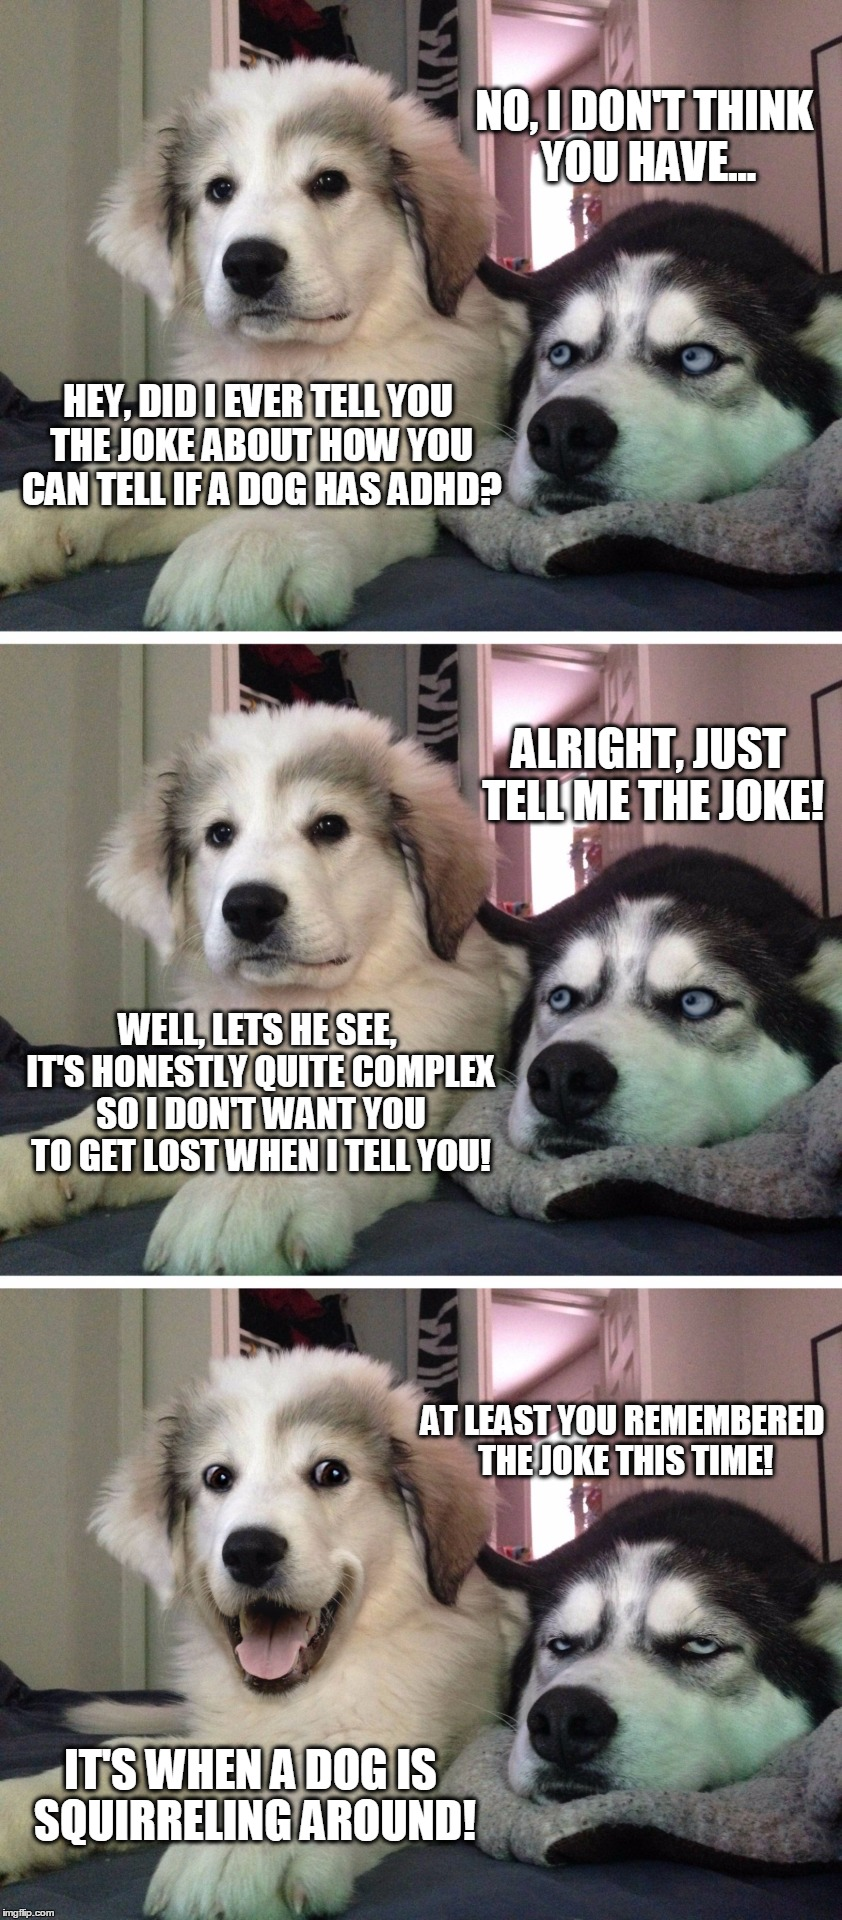 Bad Pun Dogs |  NO, I DON'T THINK YOU HAVE... HEY, DID I EVER TELL YOU THE JOKE ABOUT HOW YOU CAN TELL IF A DOG HAS ADHD? ALRIGHT, JUST TELL ME THE JOKE! WELL, LETS HE SEE, IT'S HONESTLY QUITE COMPLEX SO I DON'T WANT YOU TO GET LOST WHEN I TELL YOU! AT LEAST YOU REMEMBERED THE JOKE THIS TIME! IT'S WHEN A DOG IS SQUIRRELING AROUND! | image tagged in bad pun dogs,memes,bad pun,funny,original joke,adhd | made w/ Imgflip meme maker